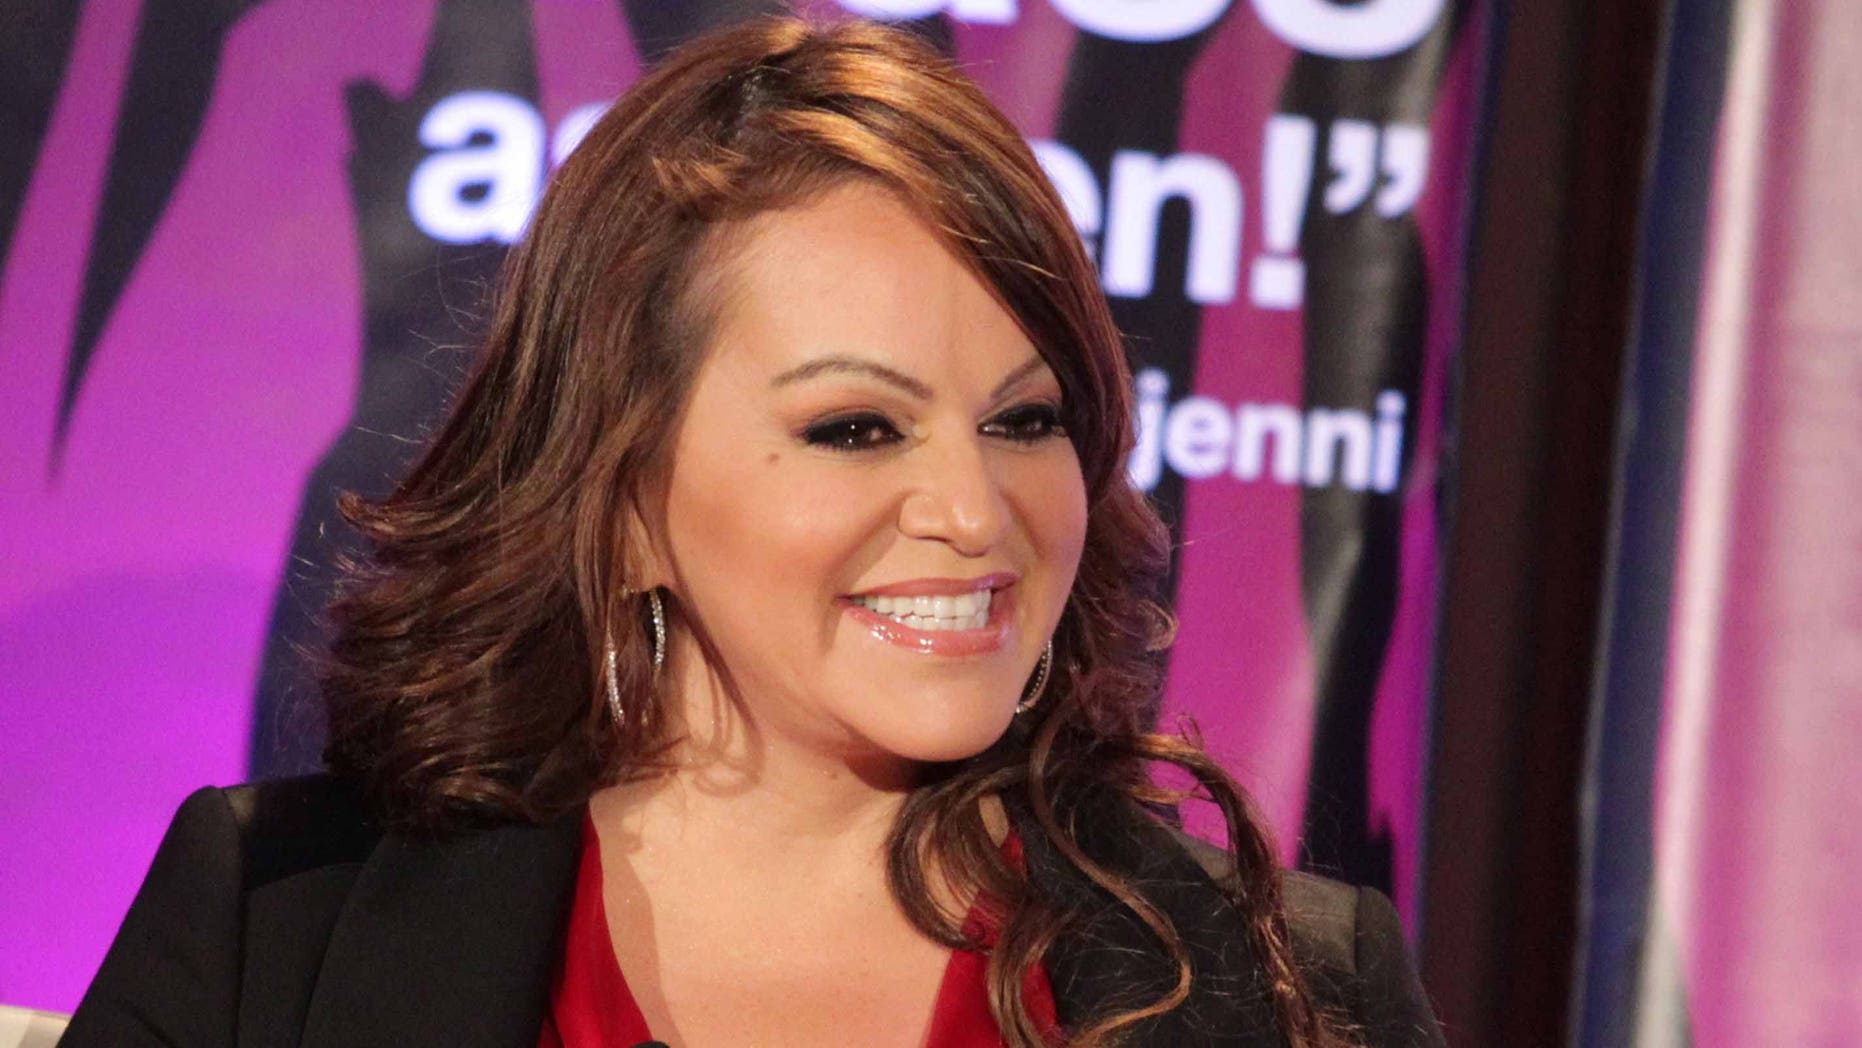 """PASADENA, CA - JANUARY 13:  Singer Jenni Rivera speaks during the """"I Love Jenni"""" lunch session during the NBC Universal portion of the 2011 Winter TCA press tour held at the Langham Hotel on January 13, 2011 in Pasadena, California.  (Photo by Frederick M. Brown/Getty Images)"""